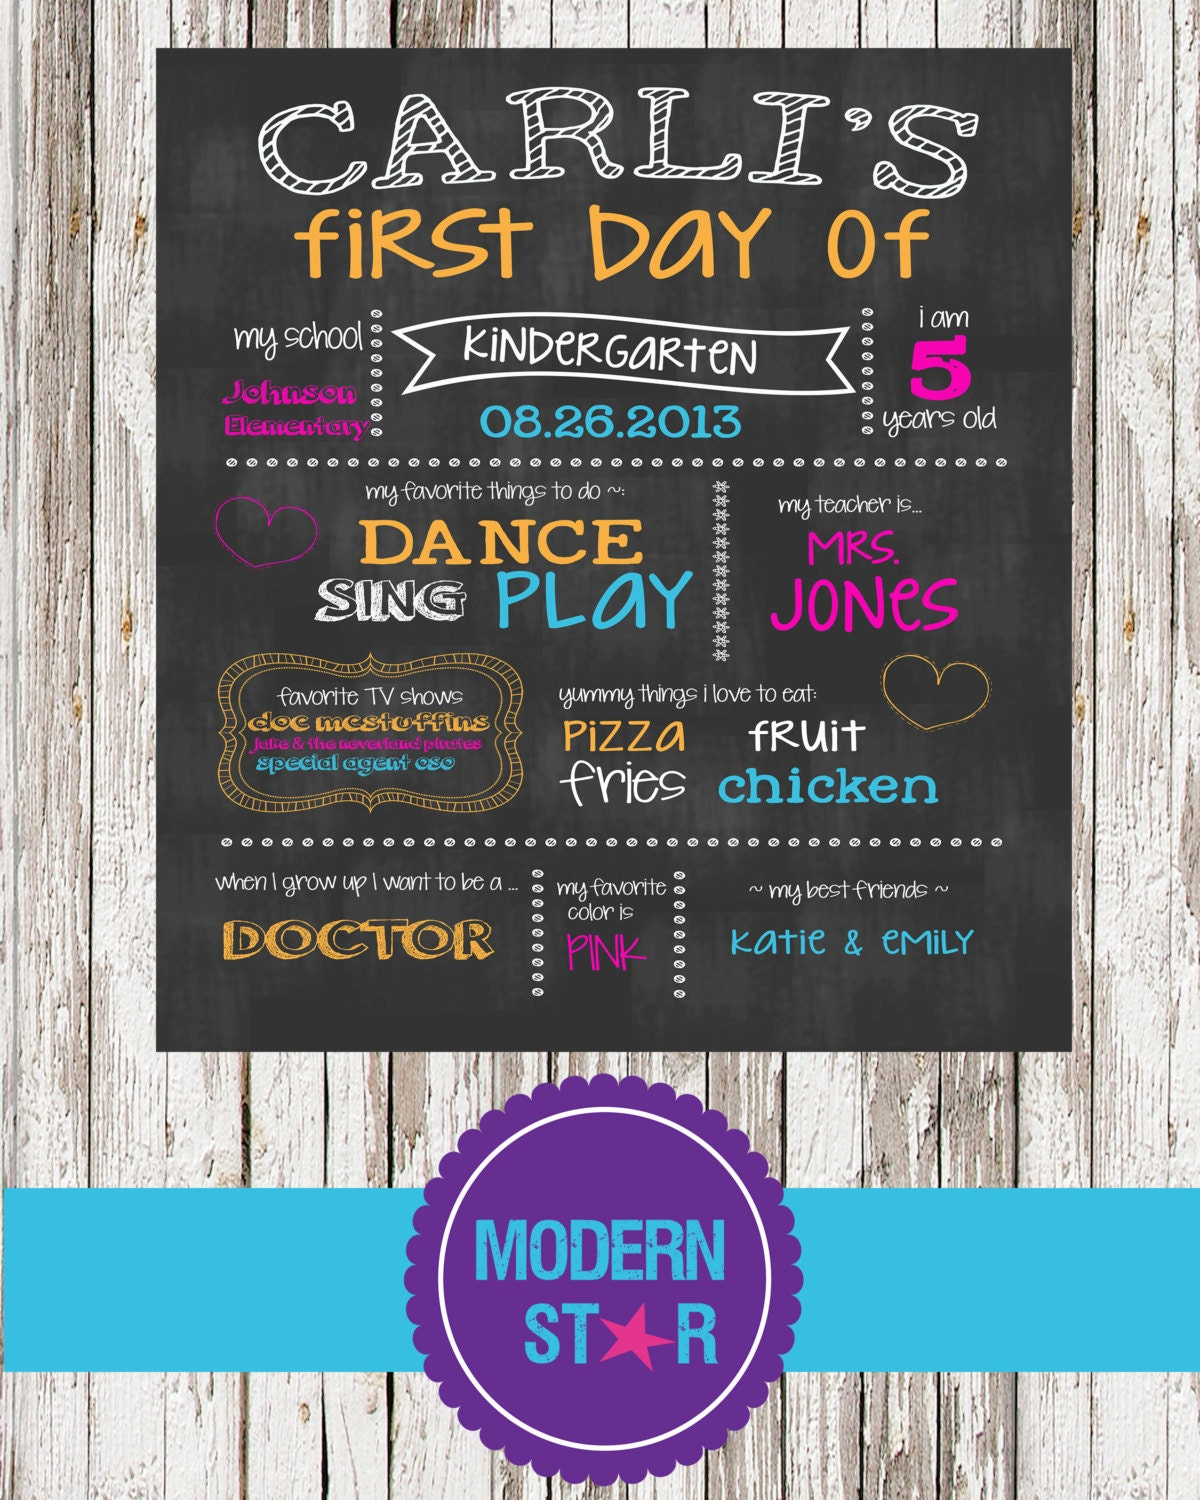 Decisive image for first day of school printable signs